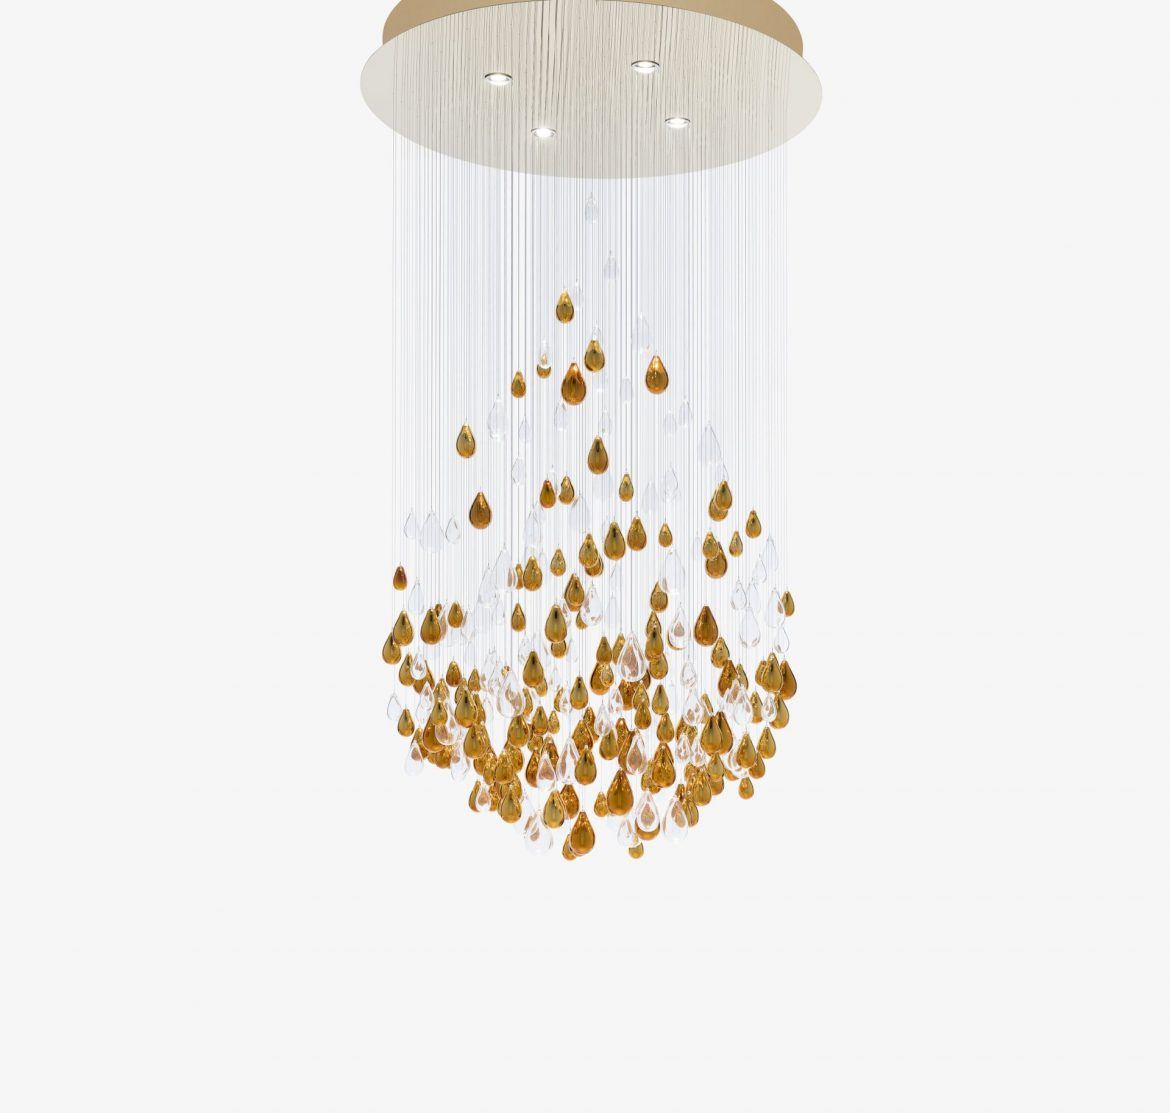 Mohd: Luxury Lighting Designs For Your Home Decor mohd Mohd: Luxury Lighting Designs For Your Home Decor Mohd Luxury Lighting Designs For Your Home Decor 3